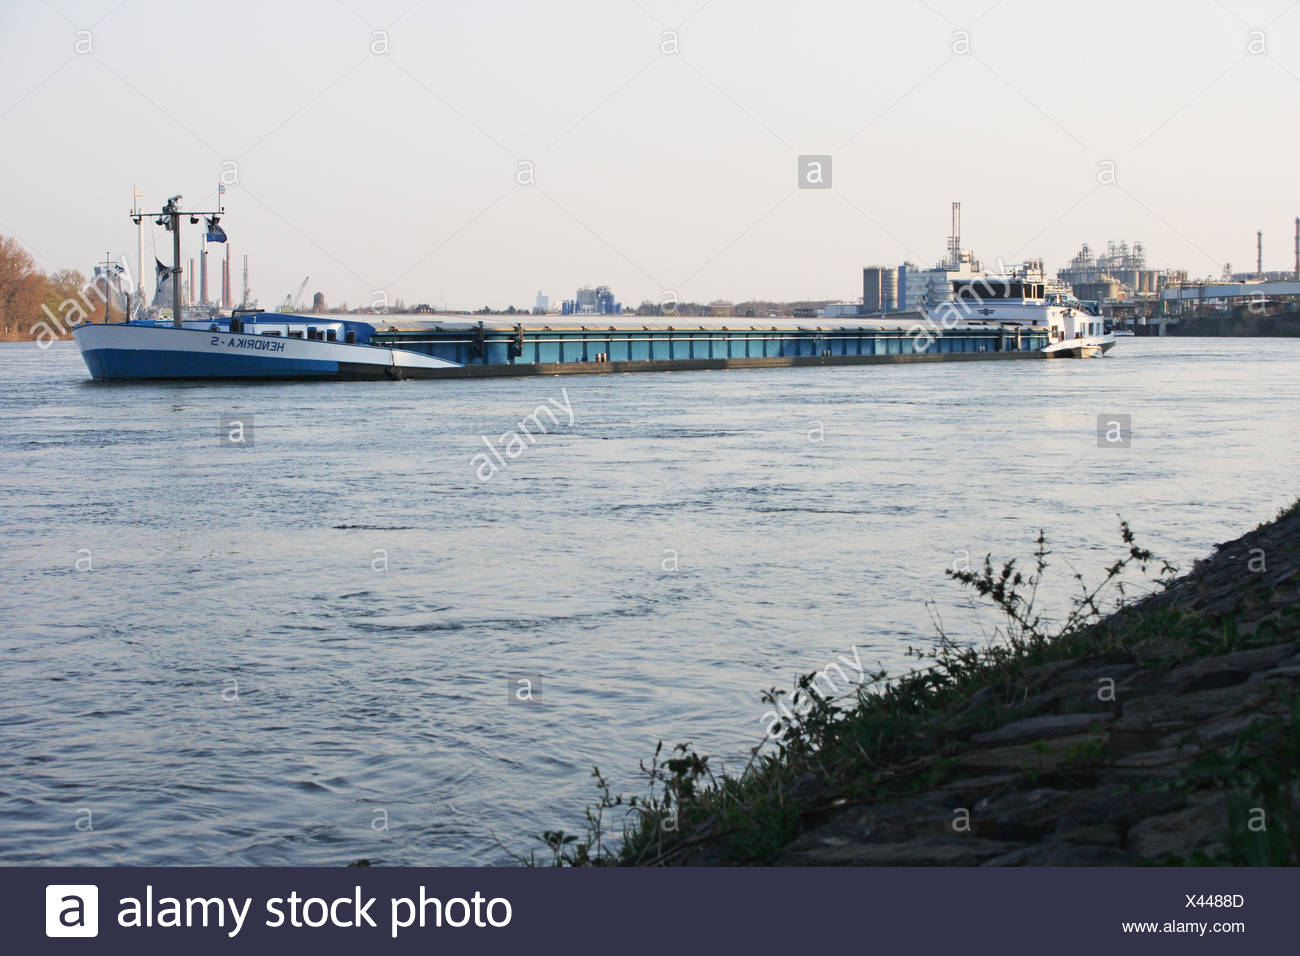 Inland ship - Stock Image